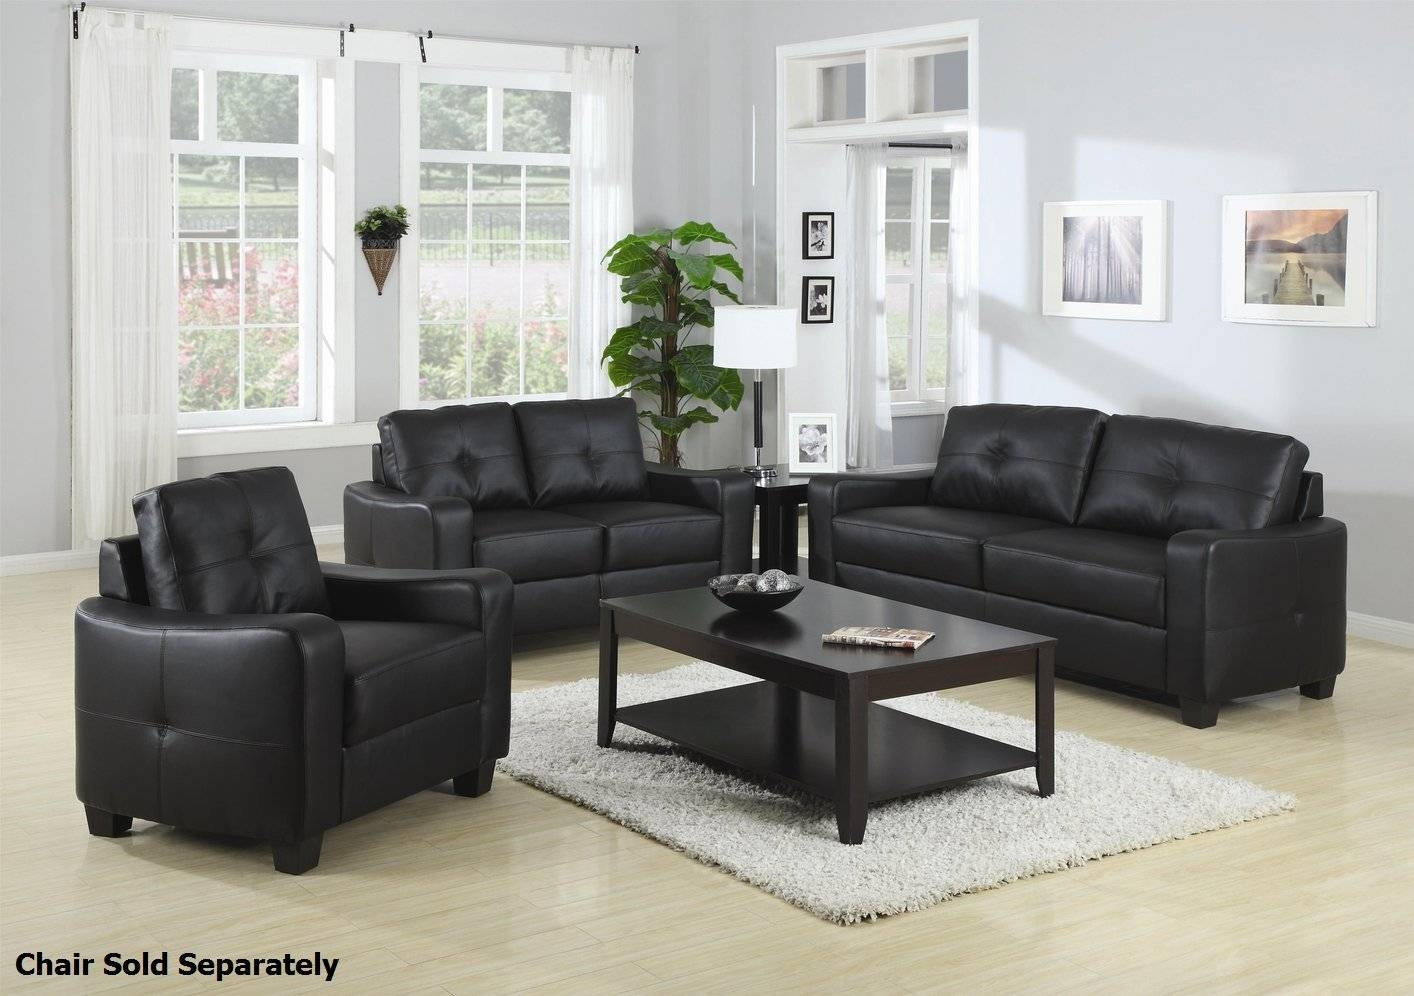 Jasmine Black Leather Sofa And Loveseat Set - Steal-A-Sofa pertaining to Black Leather Sofas and Loveseats (Image 11 of 15)